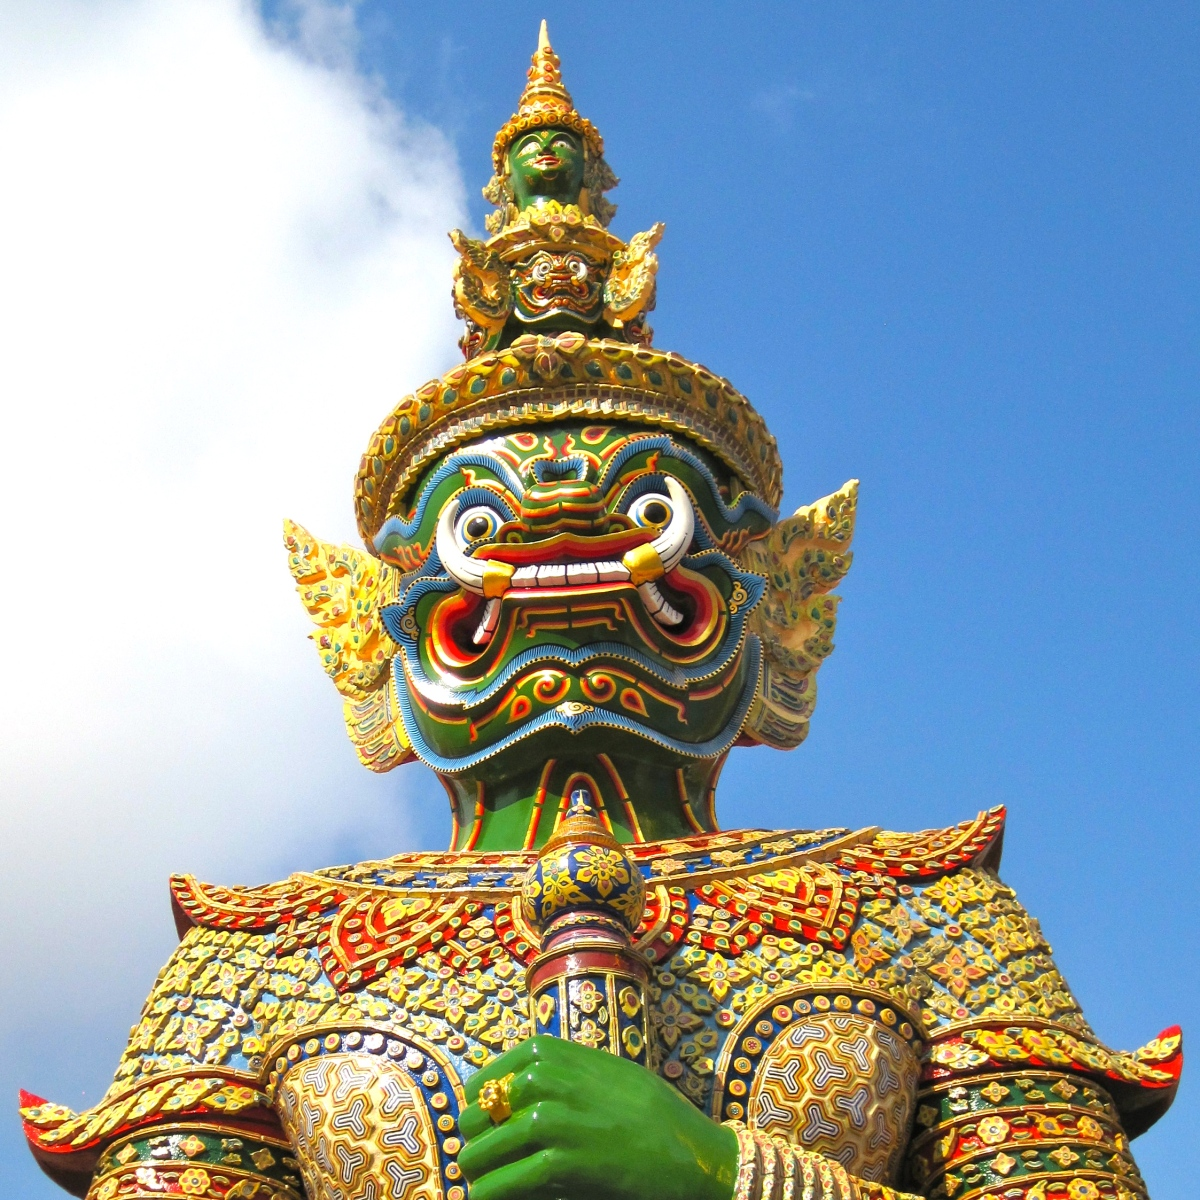 The Curious Creatures of The Grand Palace